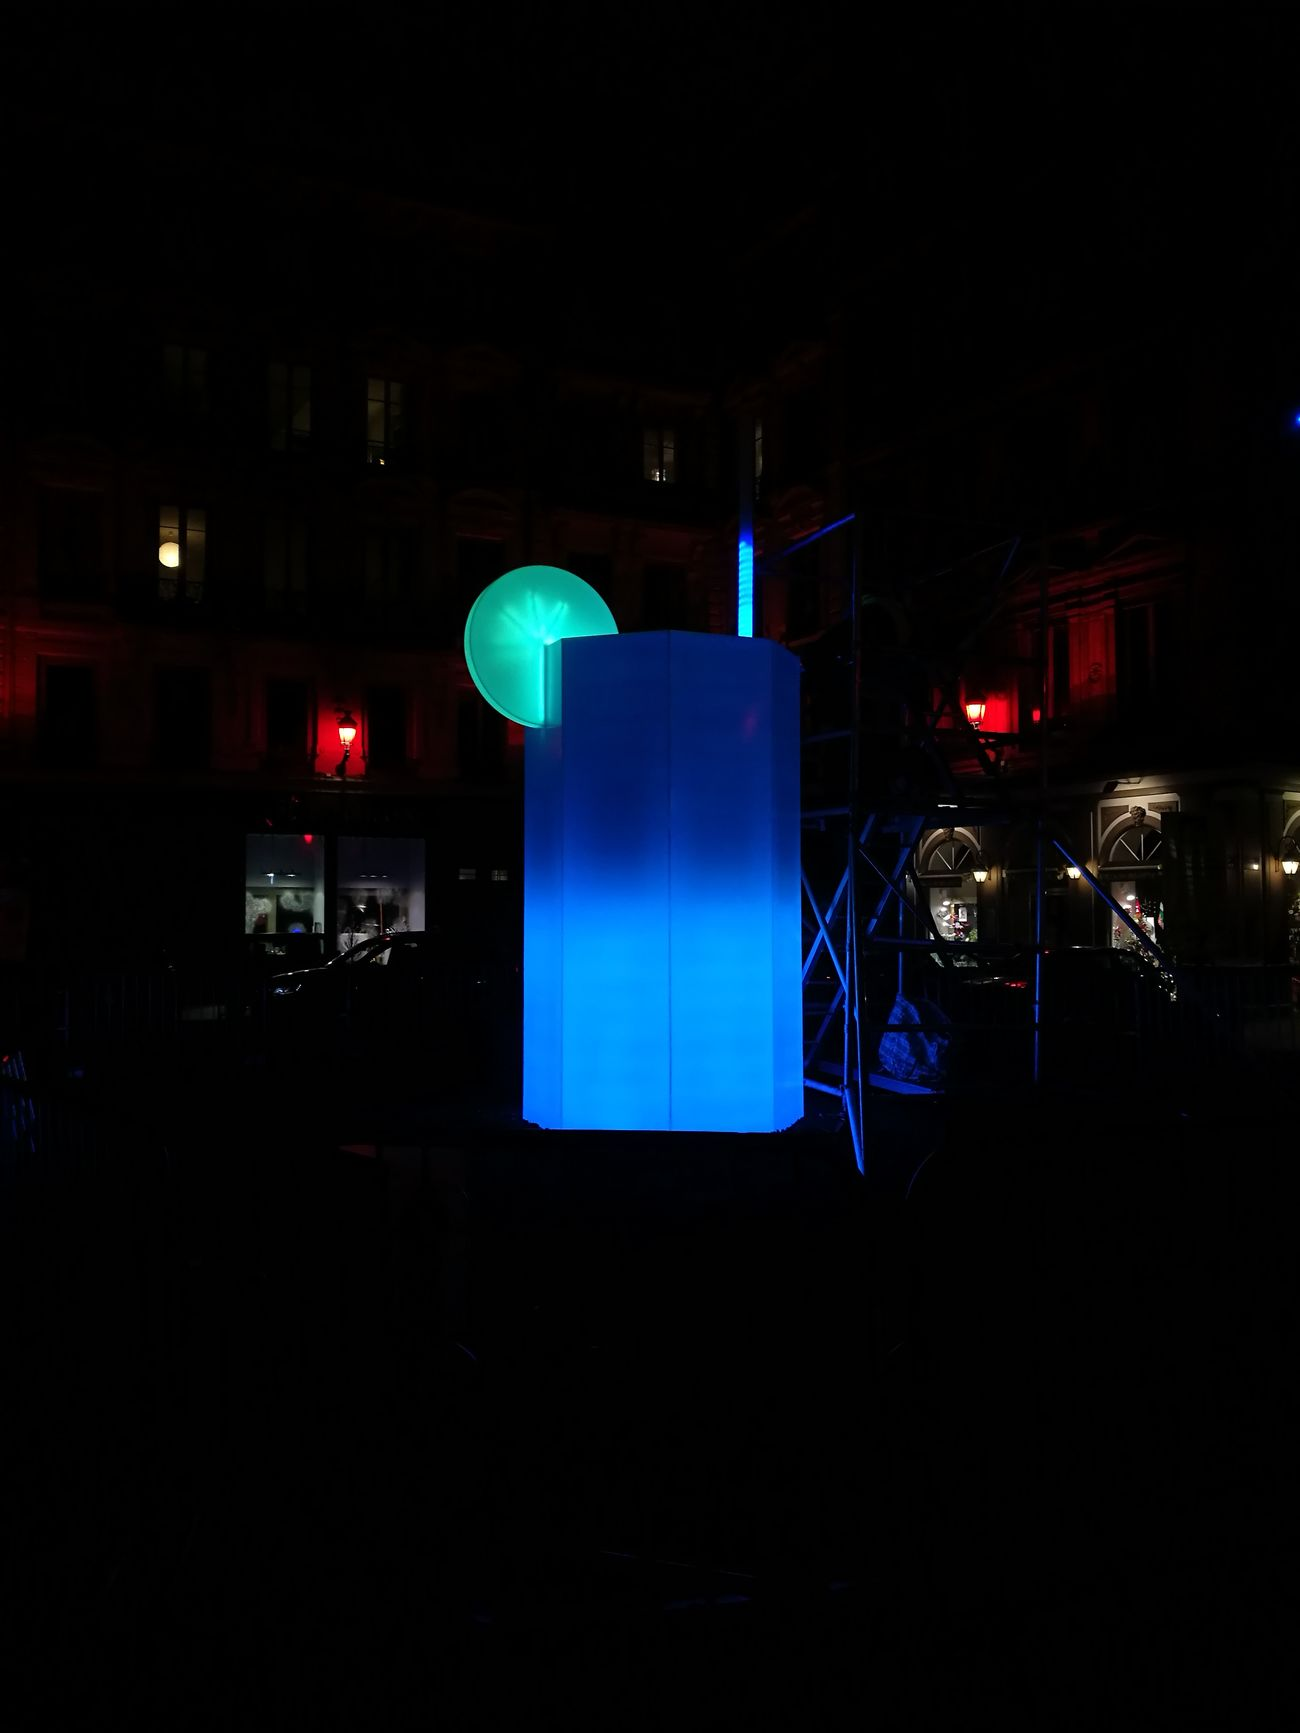 Fête des Lumières 🍹 Drinking a lot Night Arts Culture And Entertainment Nightlife Technology Illuminated Lights Mycity Soda Blue Famous Tourist Attractions Lyon Fete Des Lumieres Event Celebration Outdoors Lantern Amazing Party Architecture Light Lighting